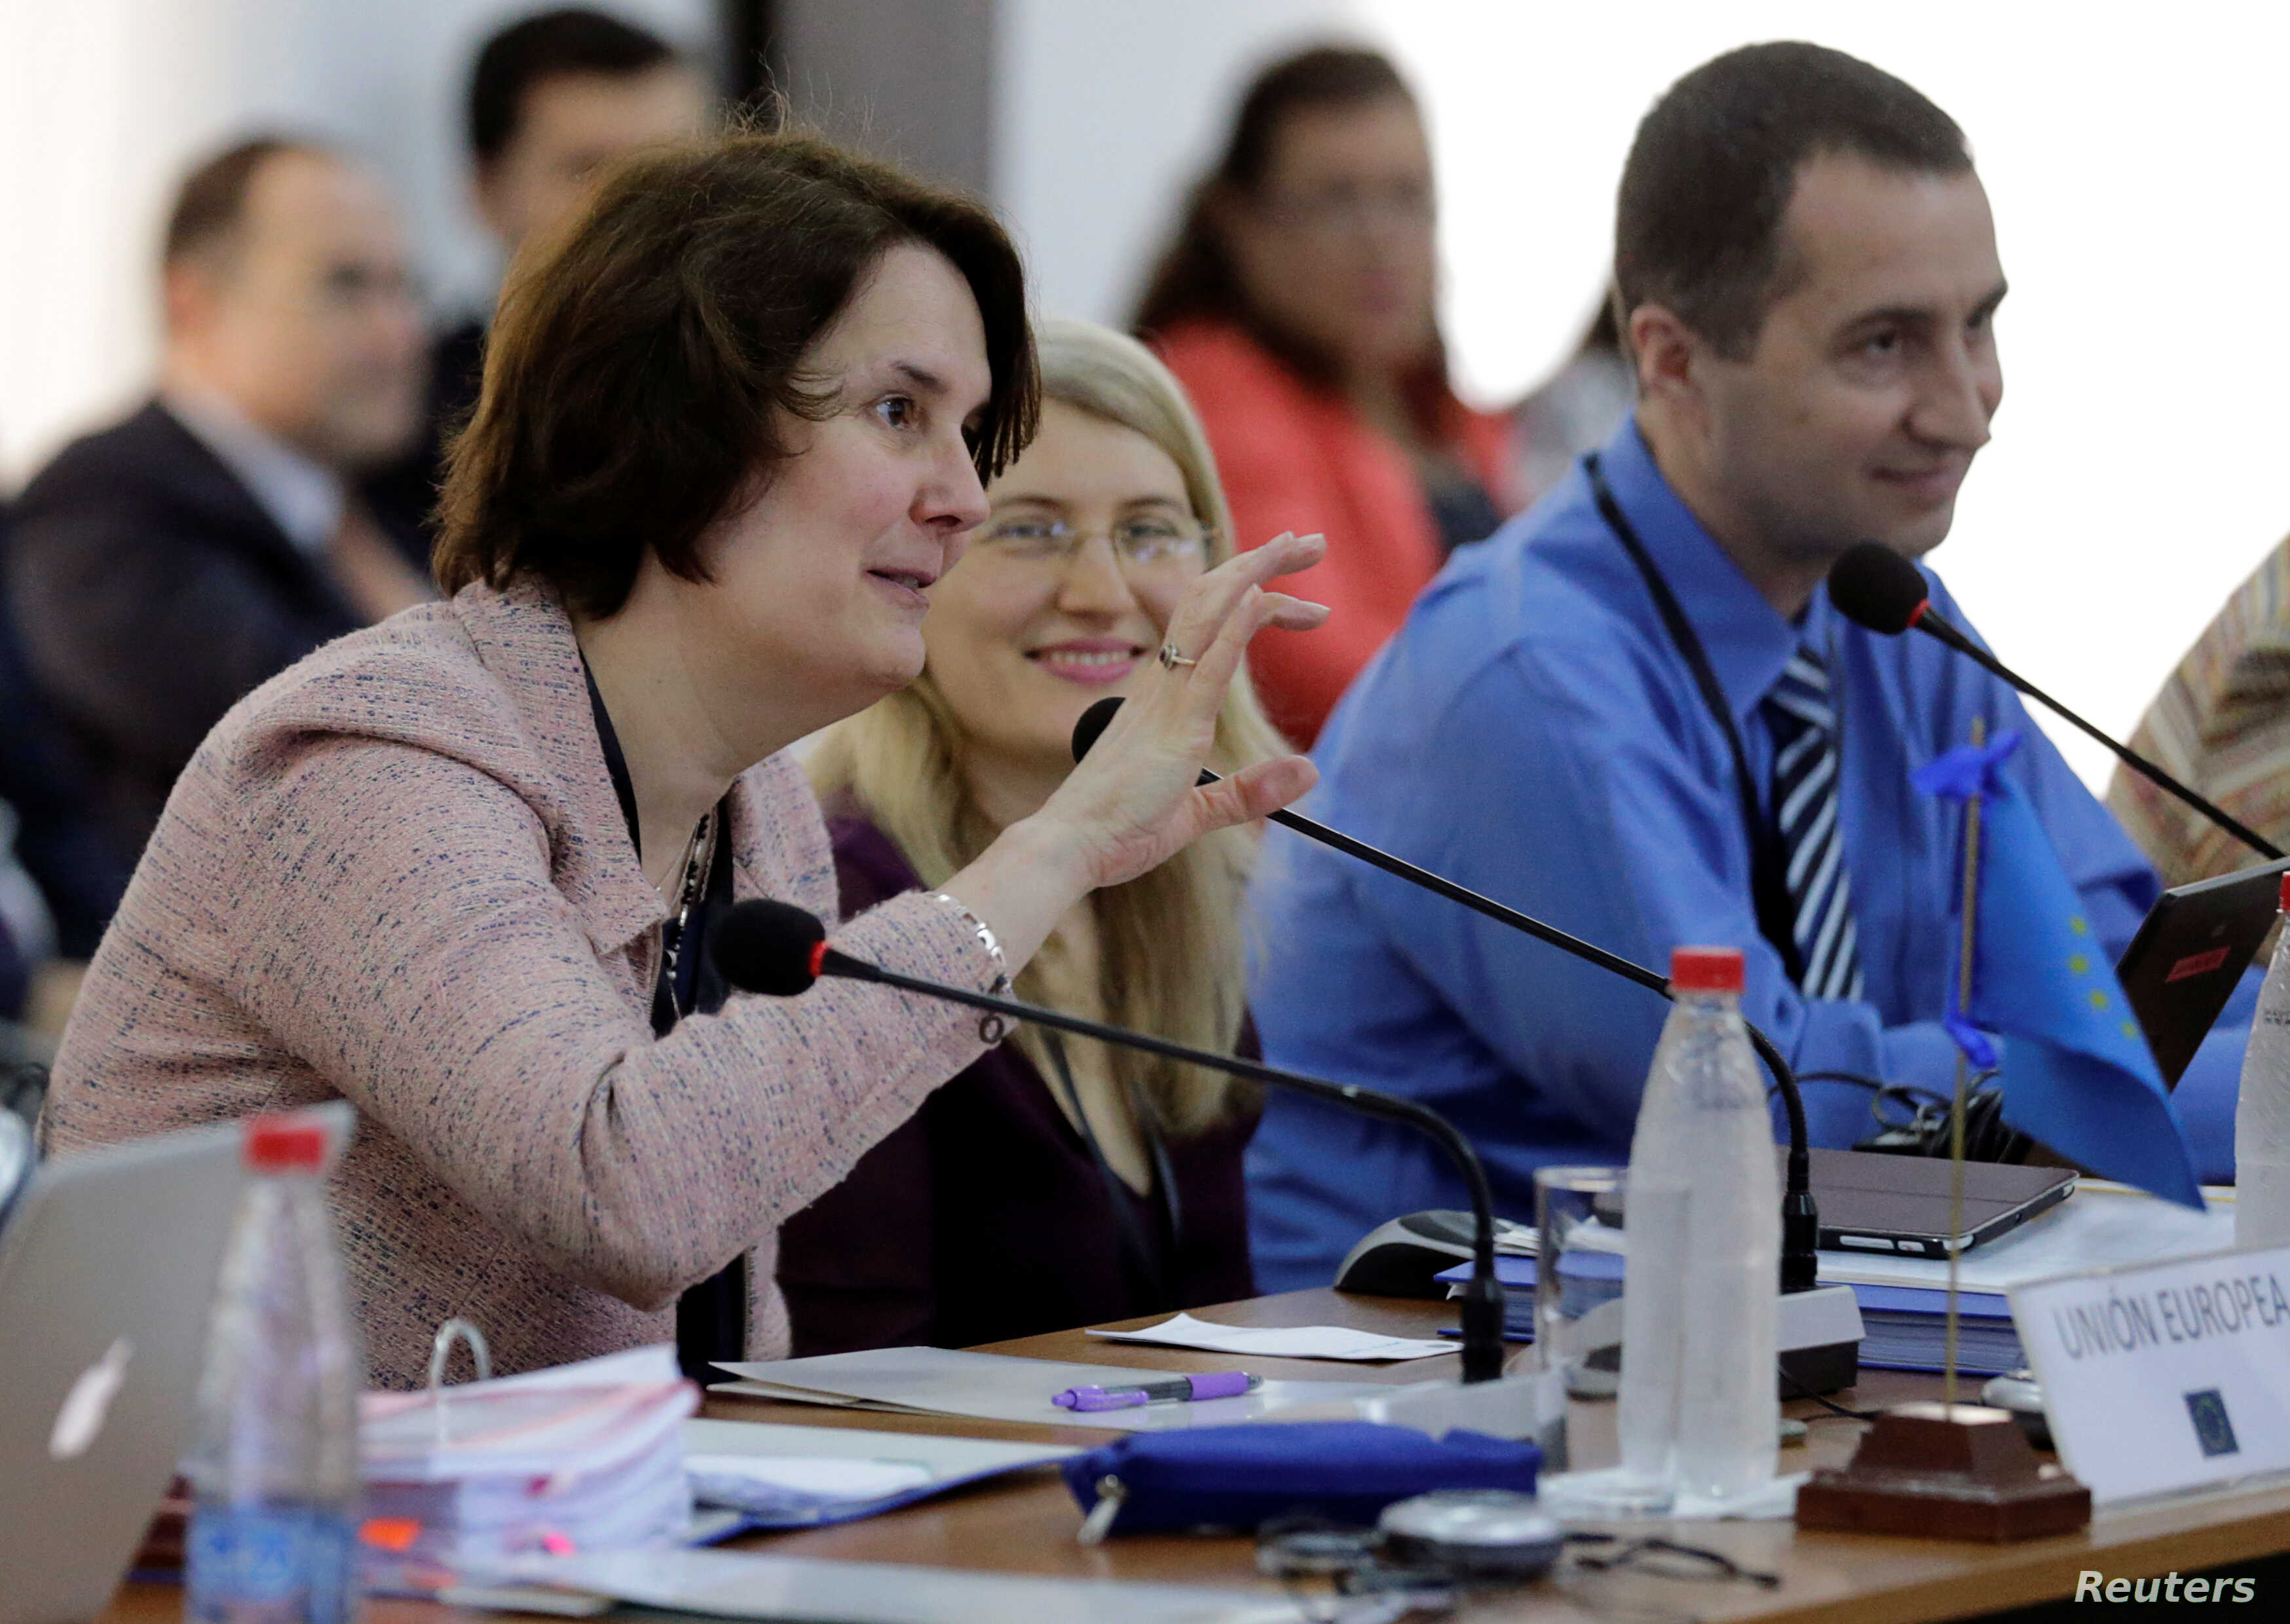 FILE - European Union Chief Negotiator for Mercosur Sandra Gallina gestures during a meeting with negotiators of the Latin American bloc Mercosur to continue discussions on a free trade deal, in Luque, Paraguay, Feb. 21, 2018.